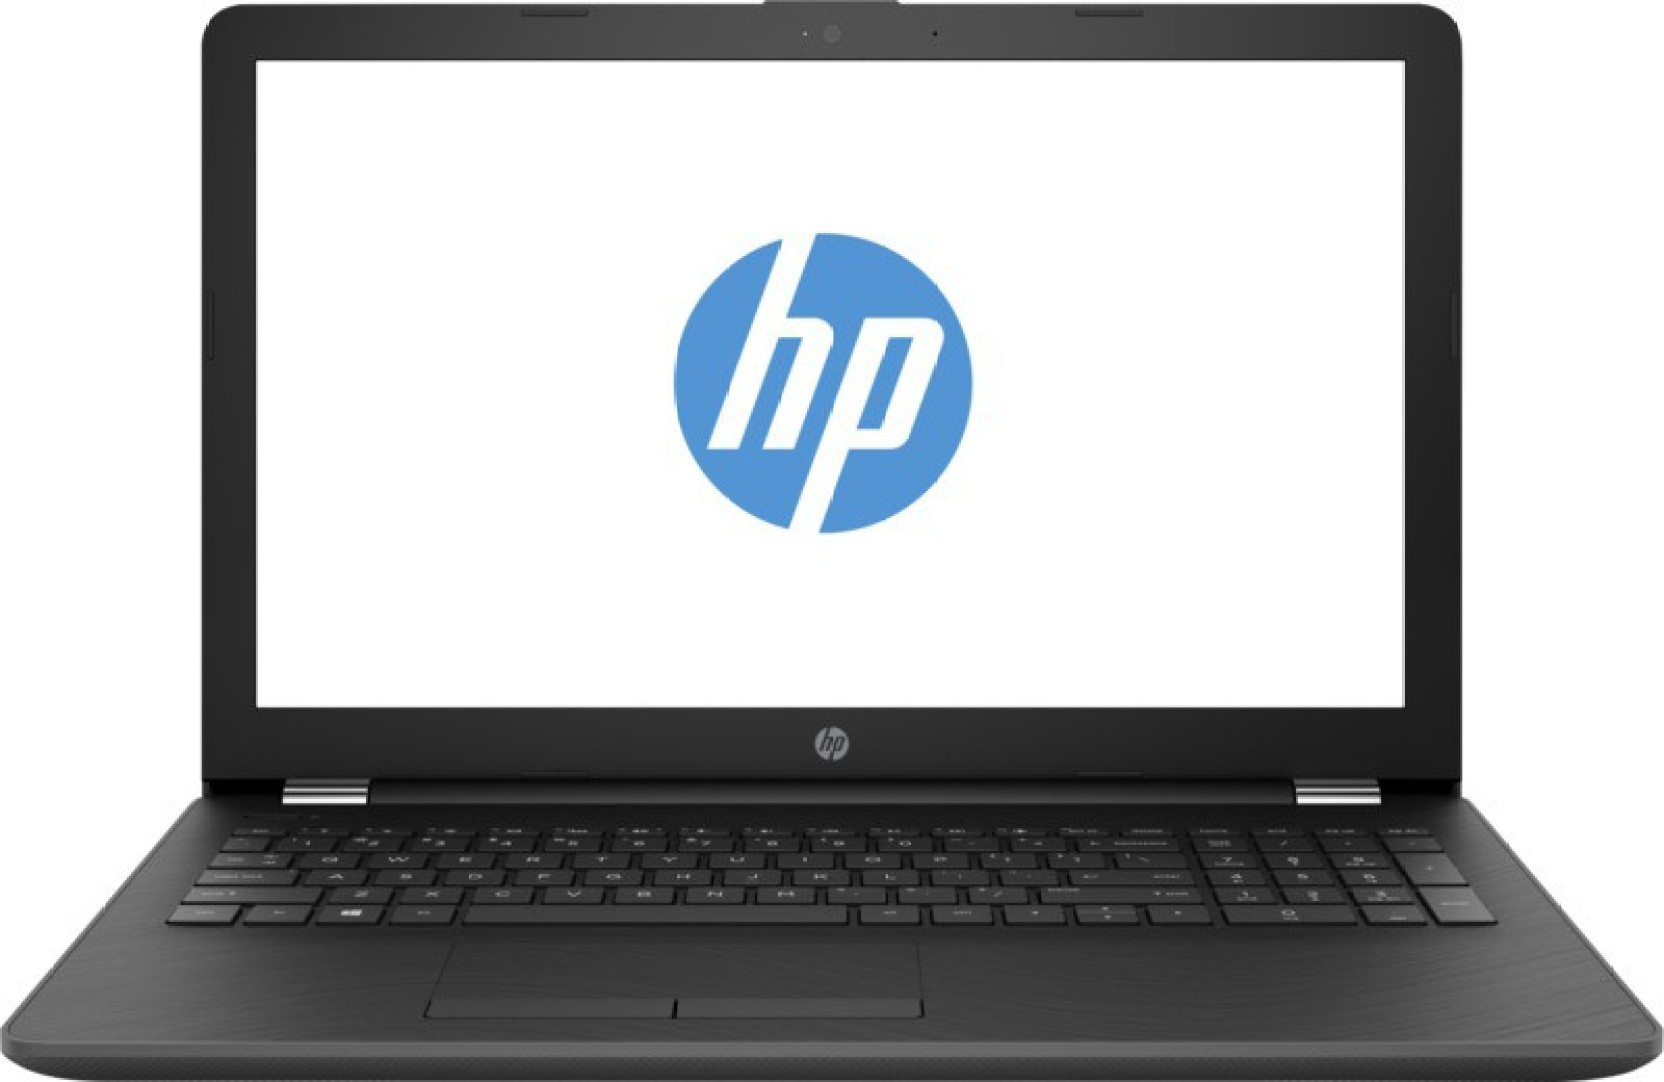 Hp Notebook Apu Dual Core A9 4 Gb 1 Tb Hdd Windows 10 2 Charger Laptop Adaptor Acer Aspire 1148 Add To Cart